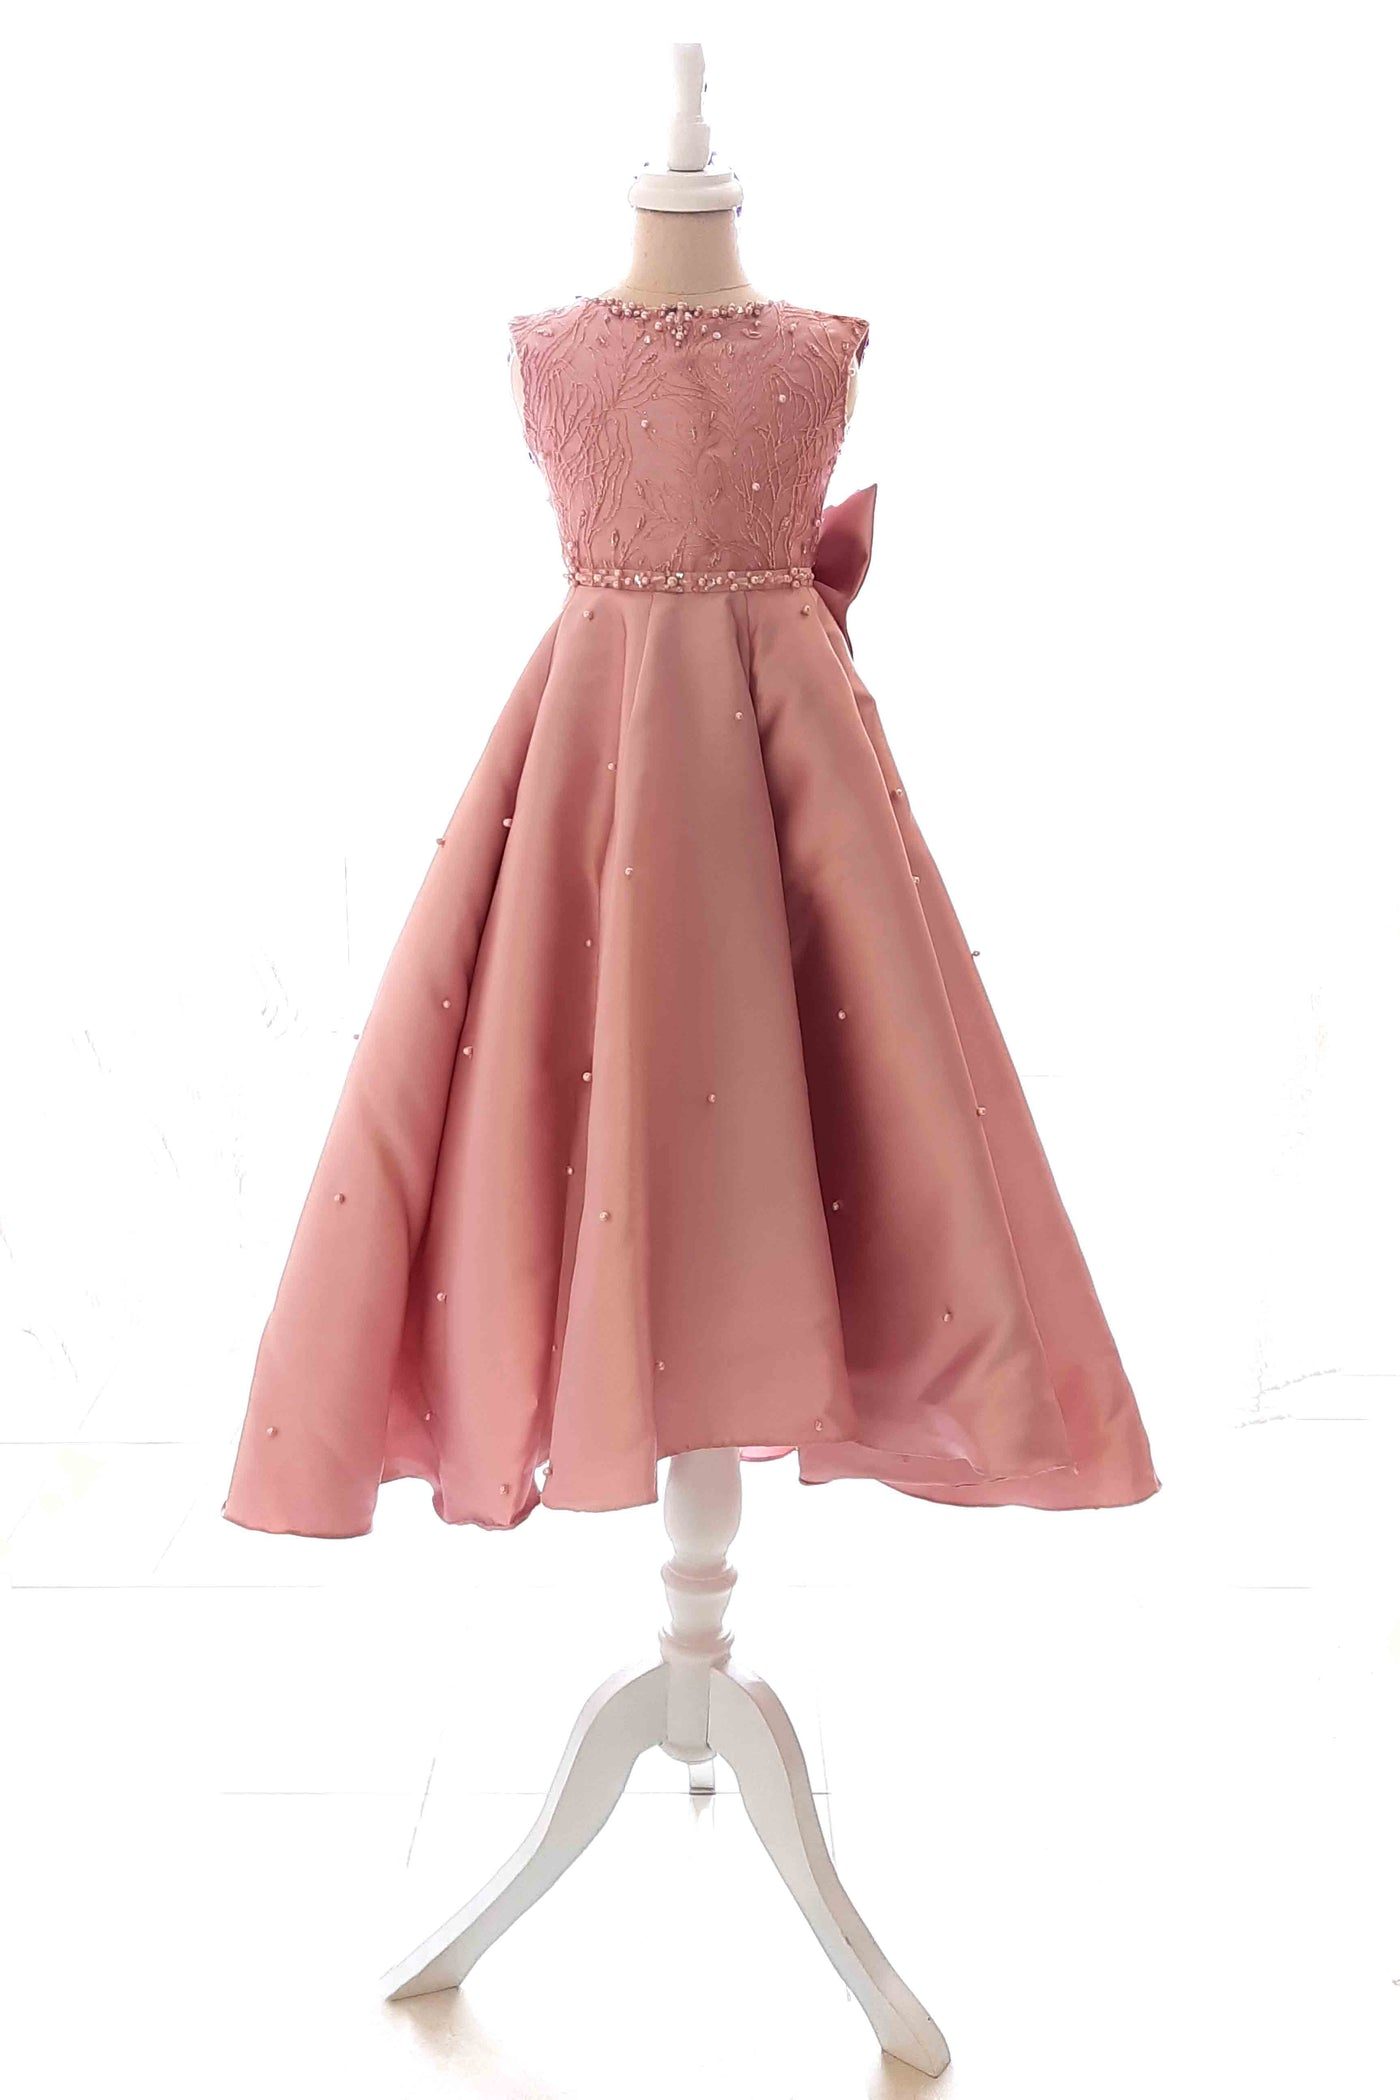 Rent : Peaches Pinkish - Pink Sleeveless Kids Ball Gown